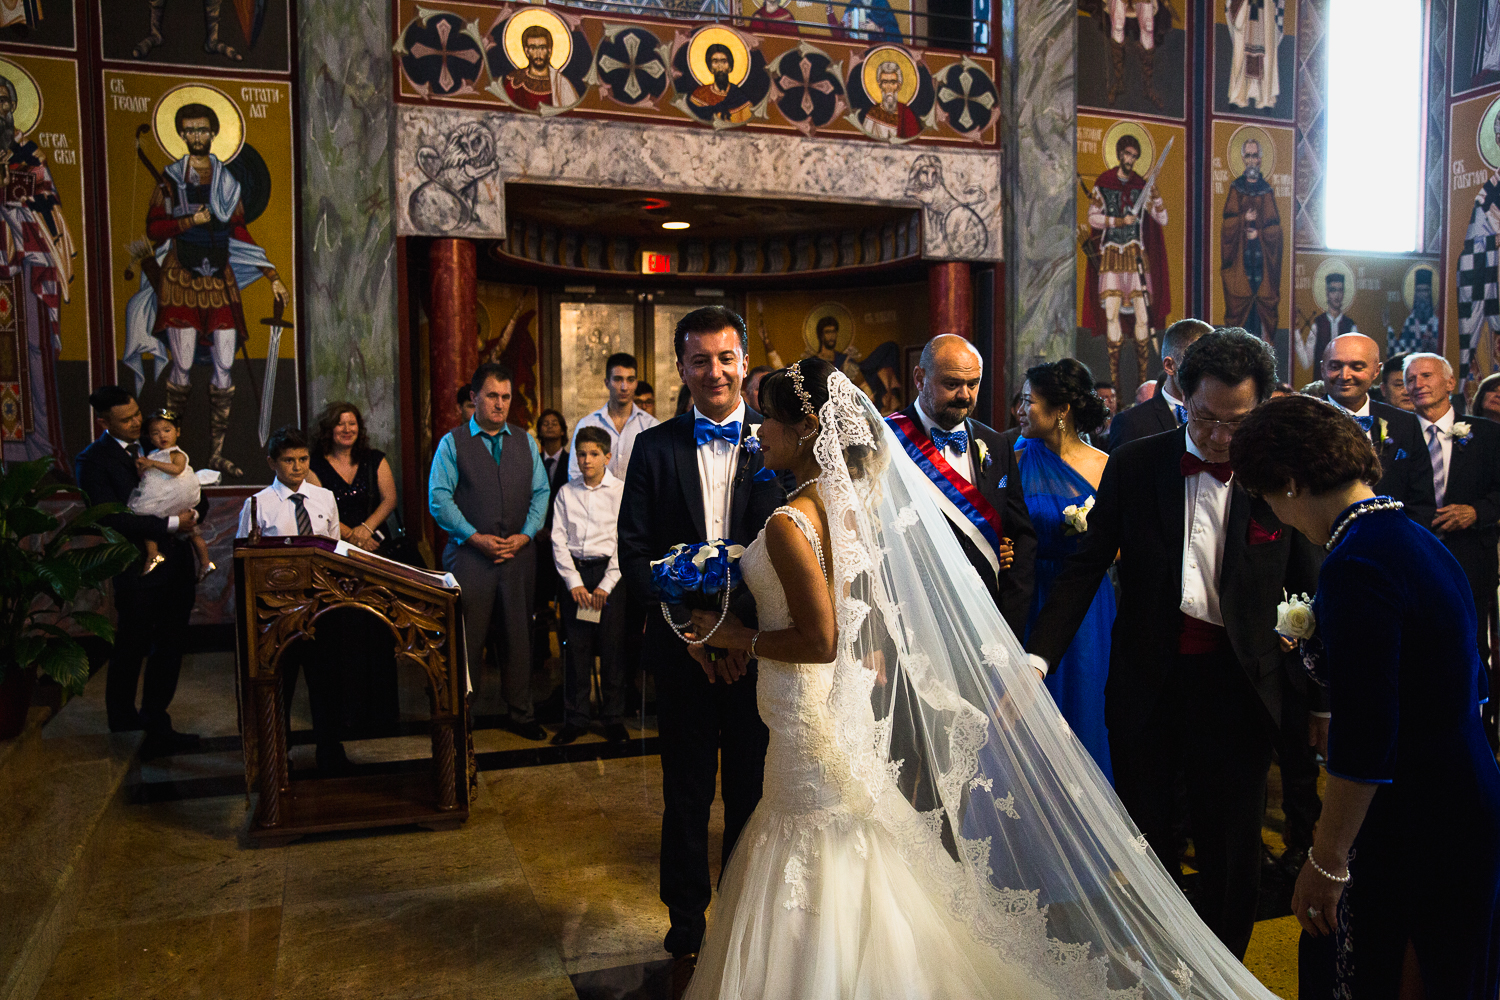 St-Sava-Serbian-Orthodox-Church-Wedding-Mississauga-Ontario-Derrel-Ho-Shing-Photography-0003.jpg